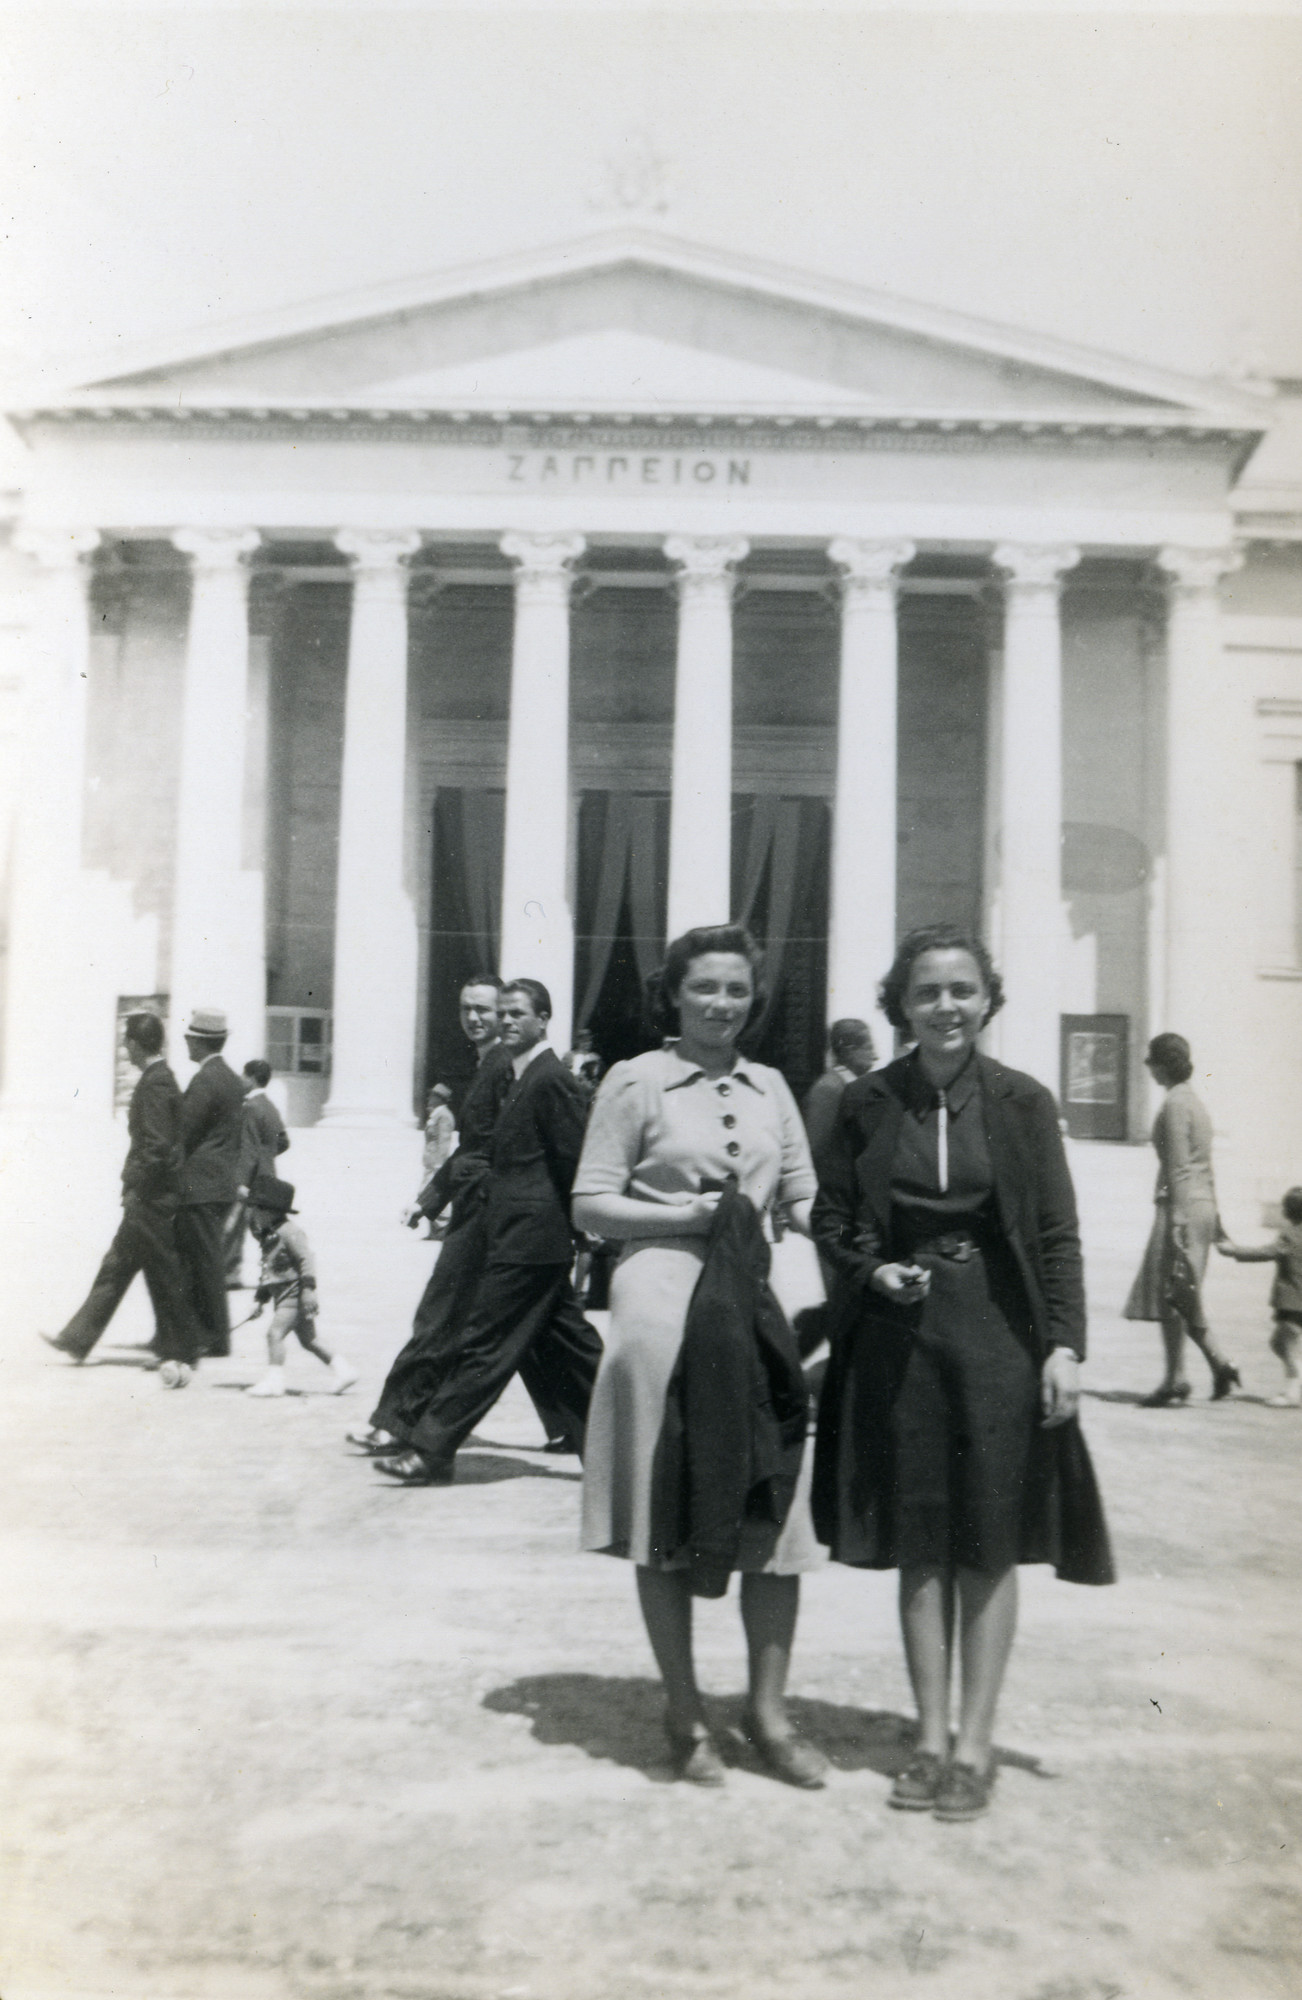 Jenny Noam Ezratty (left) and Yolanda visit  Zappeion Garden (The Athens National Garden (in 1937 or 1939).